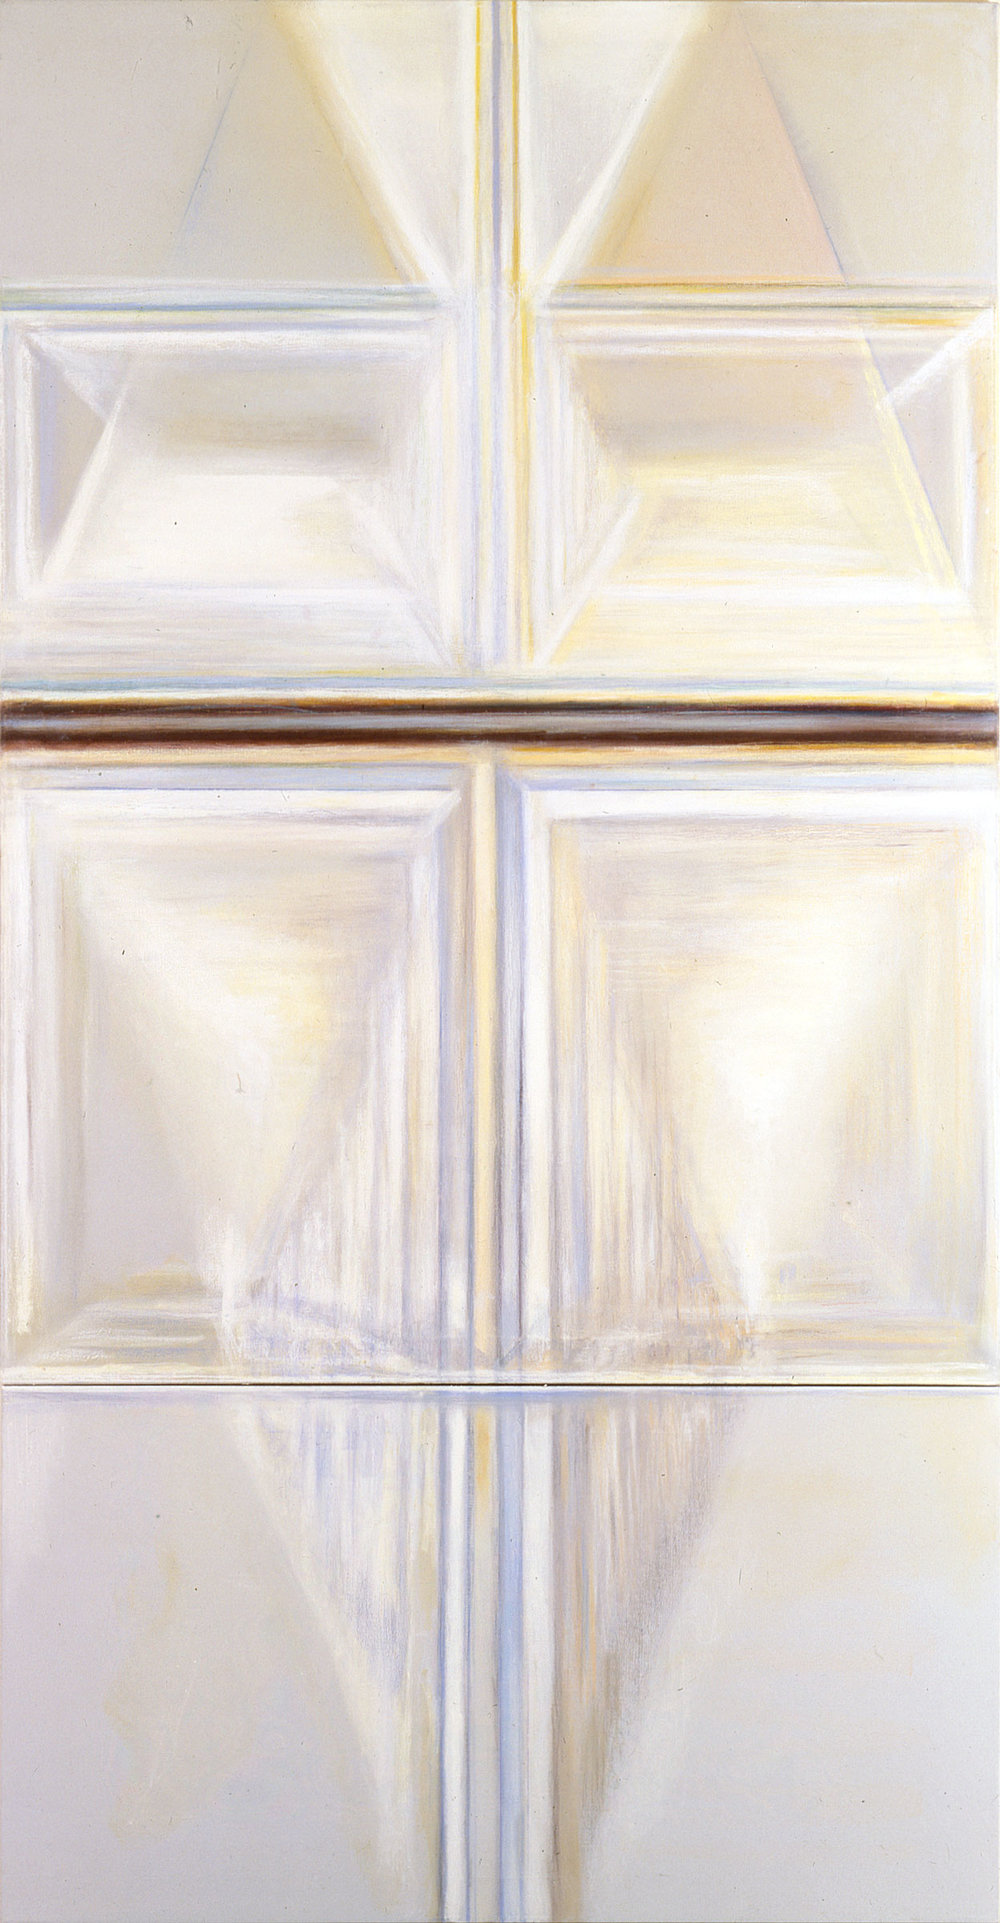 Hedda Sterne,  Untitled #16 , 1989, Oil on canvas, 100 1/4 x 51 3/4 in. (254.6 x 131.4 cm); Collection of Museum of Contemporary Art, San Diego; Gift of Deborah and David Guss, 1992.26